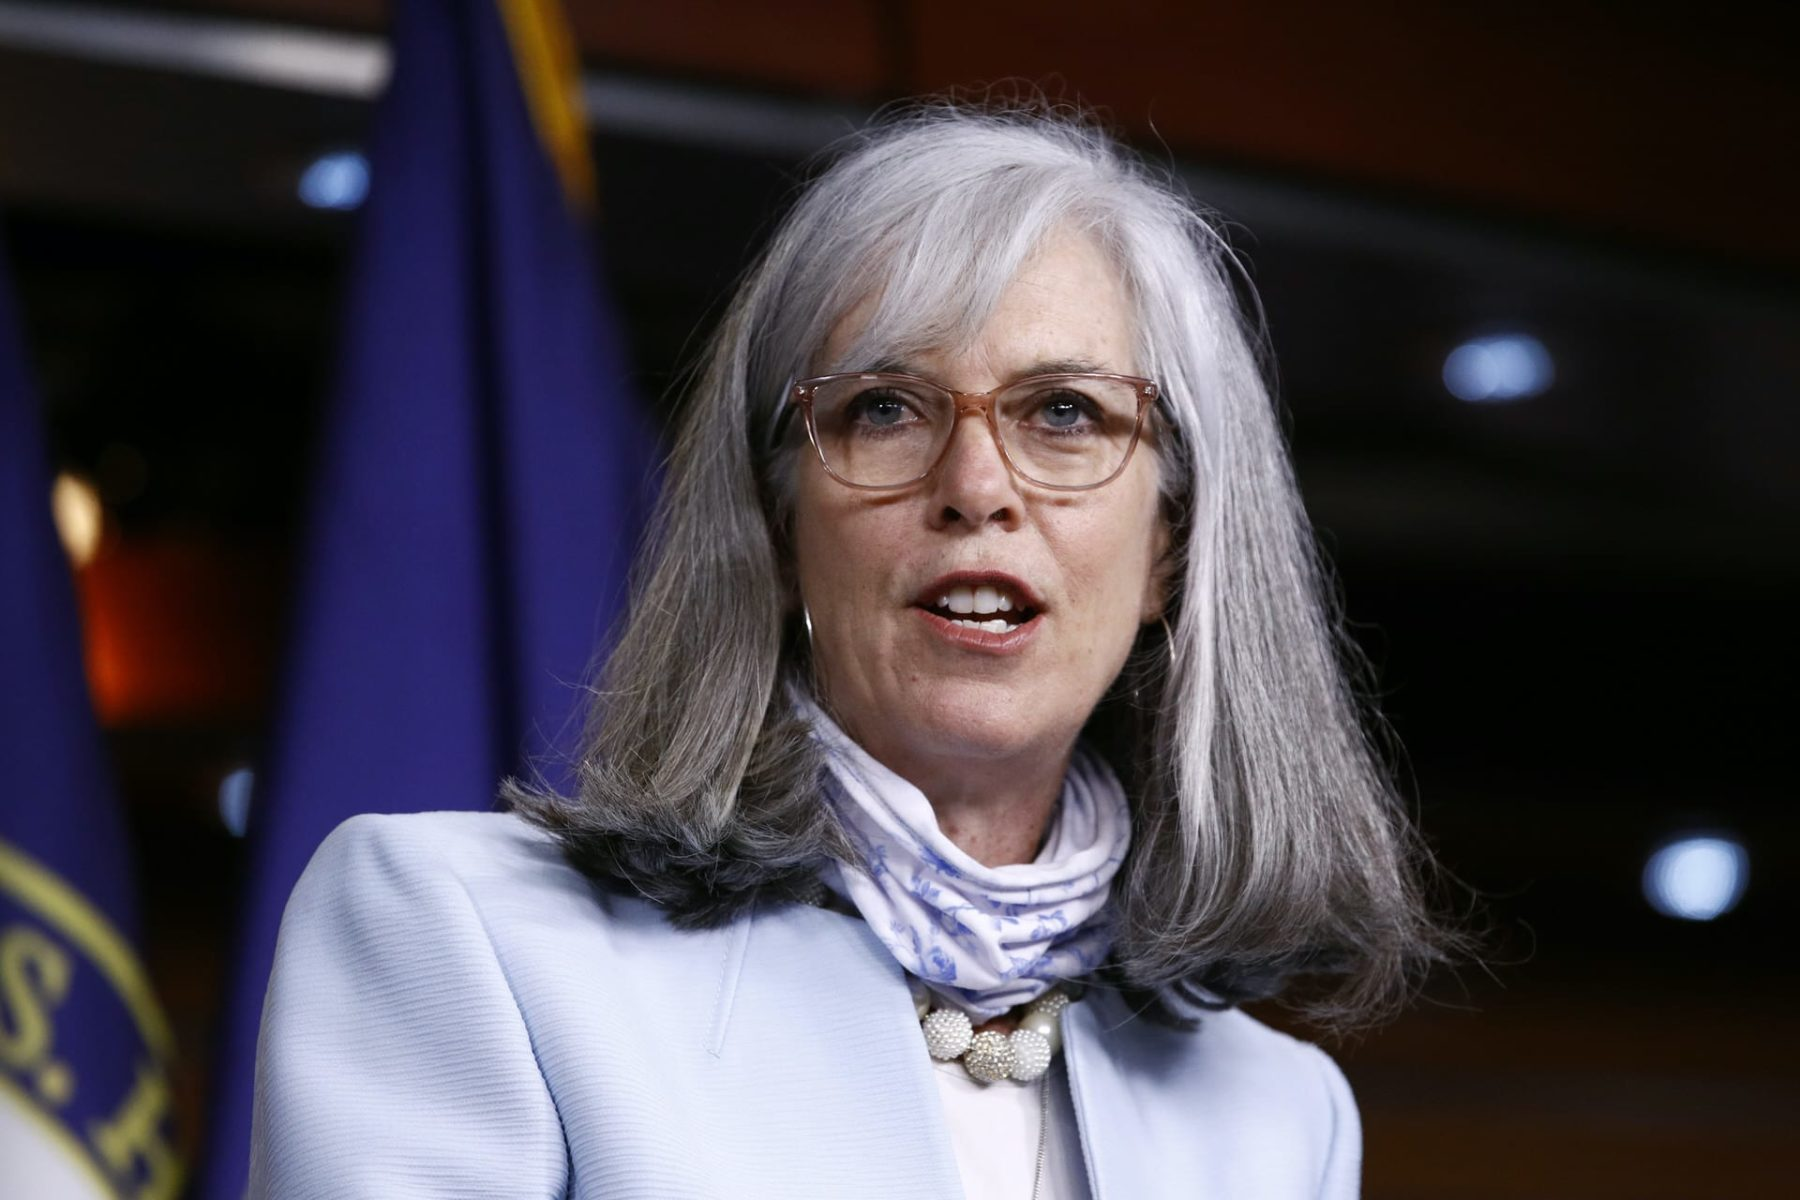 Democratic Caucus Vice Chair, Rep. Katherine Clark, D-Mass., speaks during a news conference on Capitol Hill in Washington, Monday, June 29, 2020